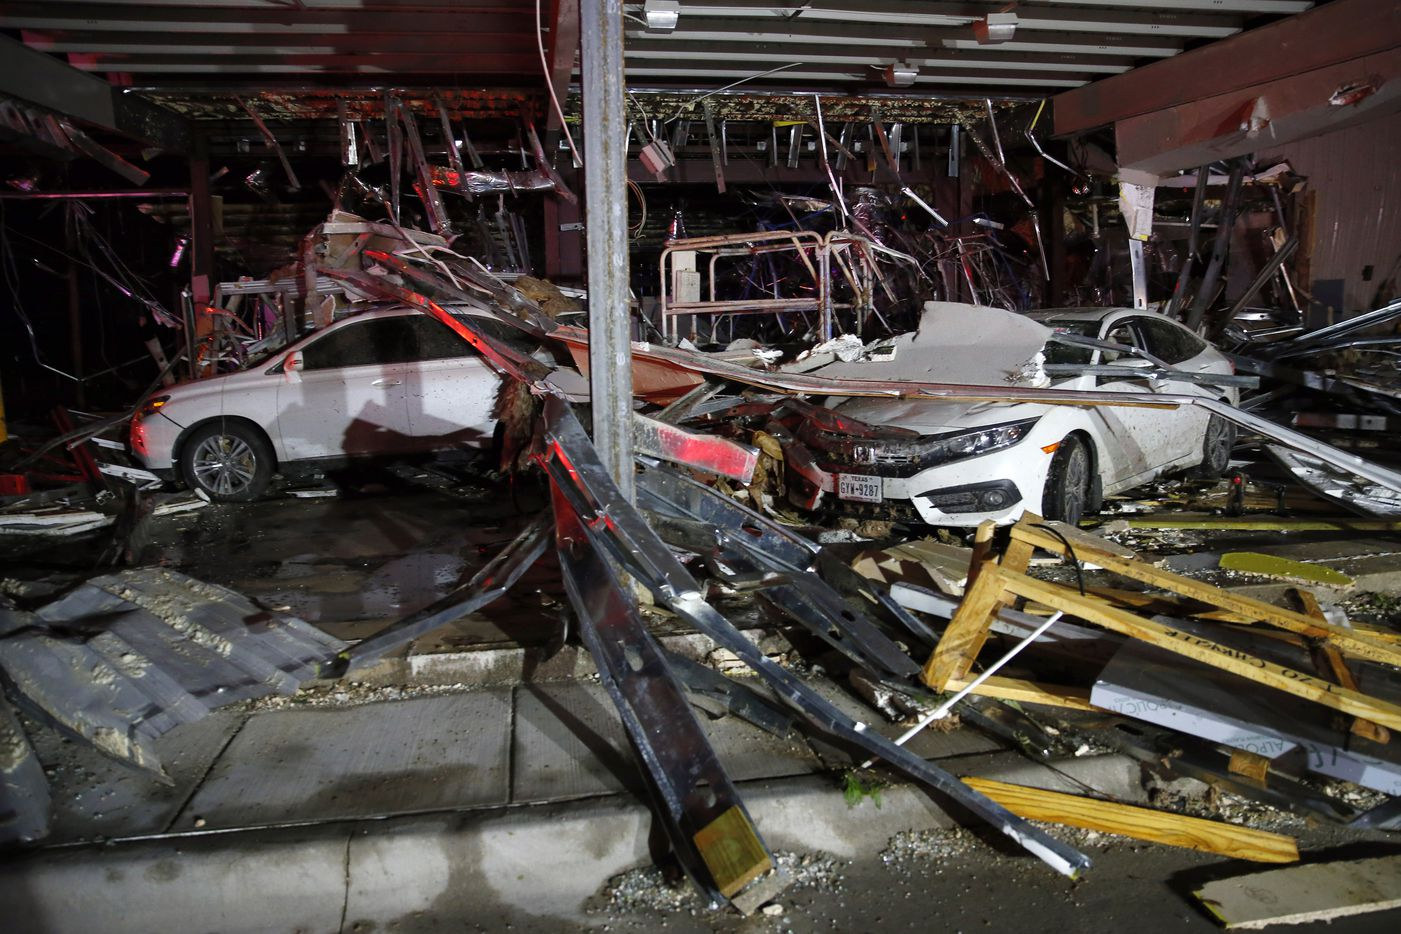 As the storm approached cars sought shelter inside a  car dealership that was under construction. According to the staff at the dealership the car occupants were unhurt. (Tom Fox/The Dallas Morning News)